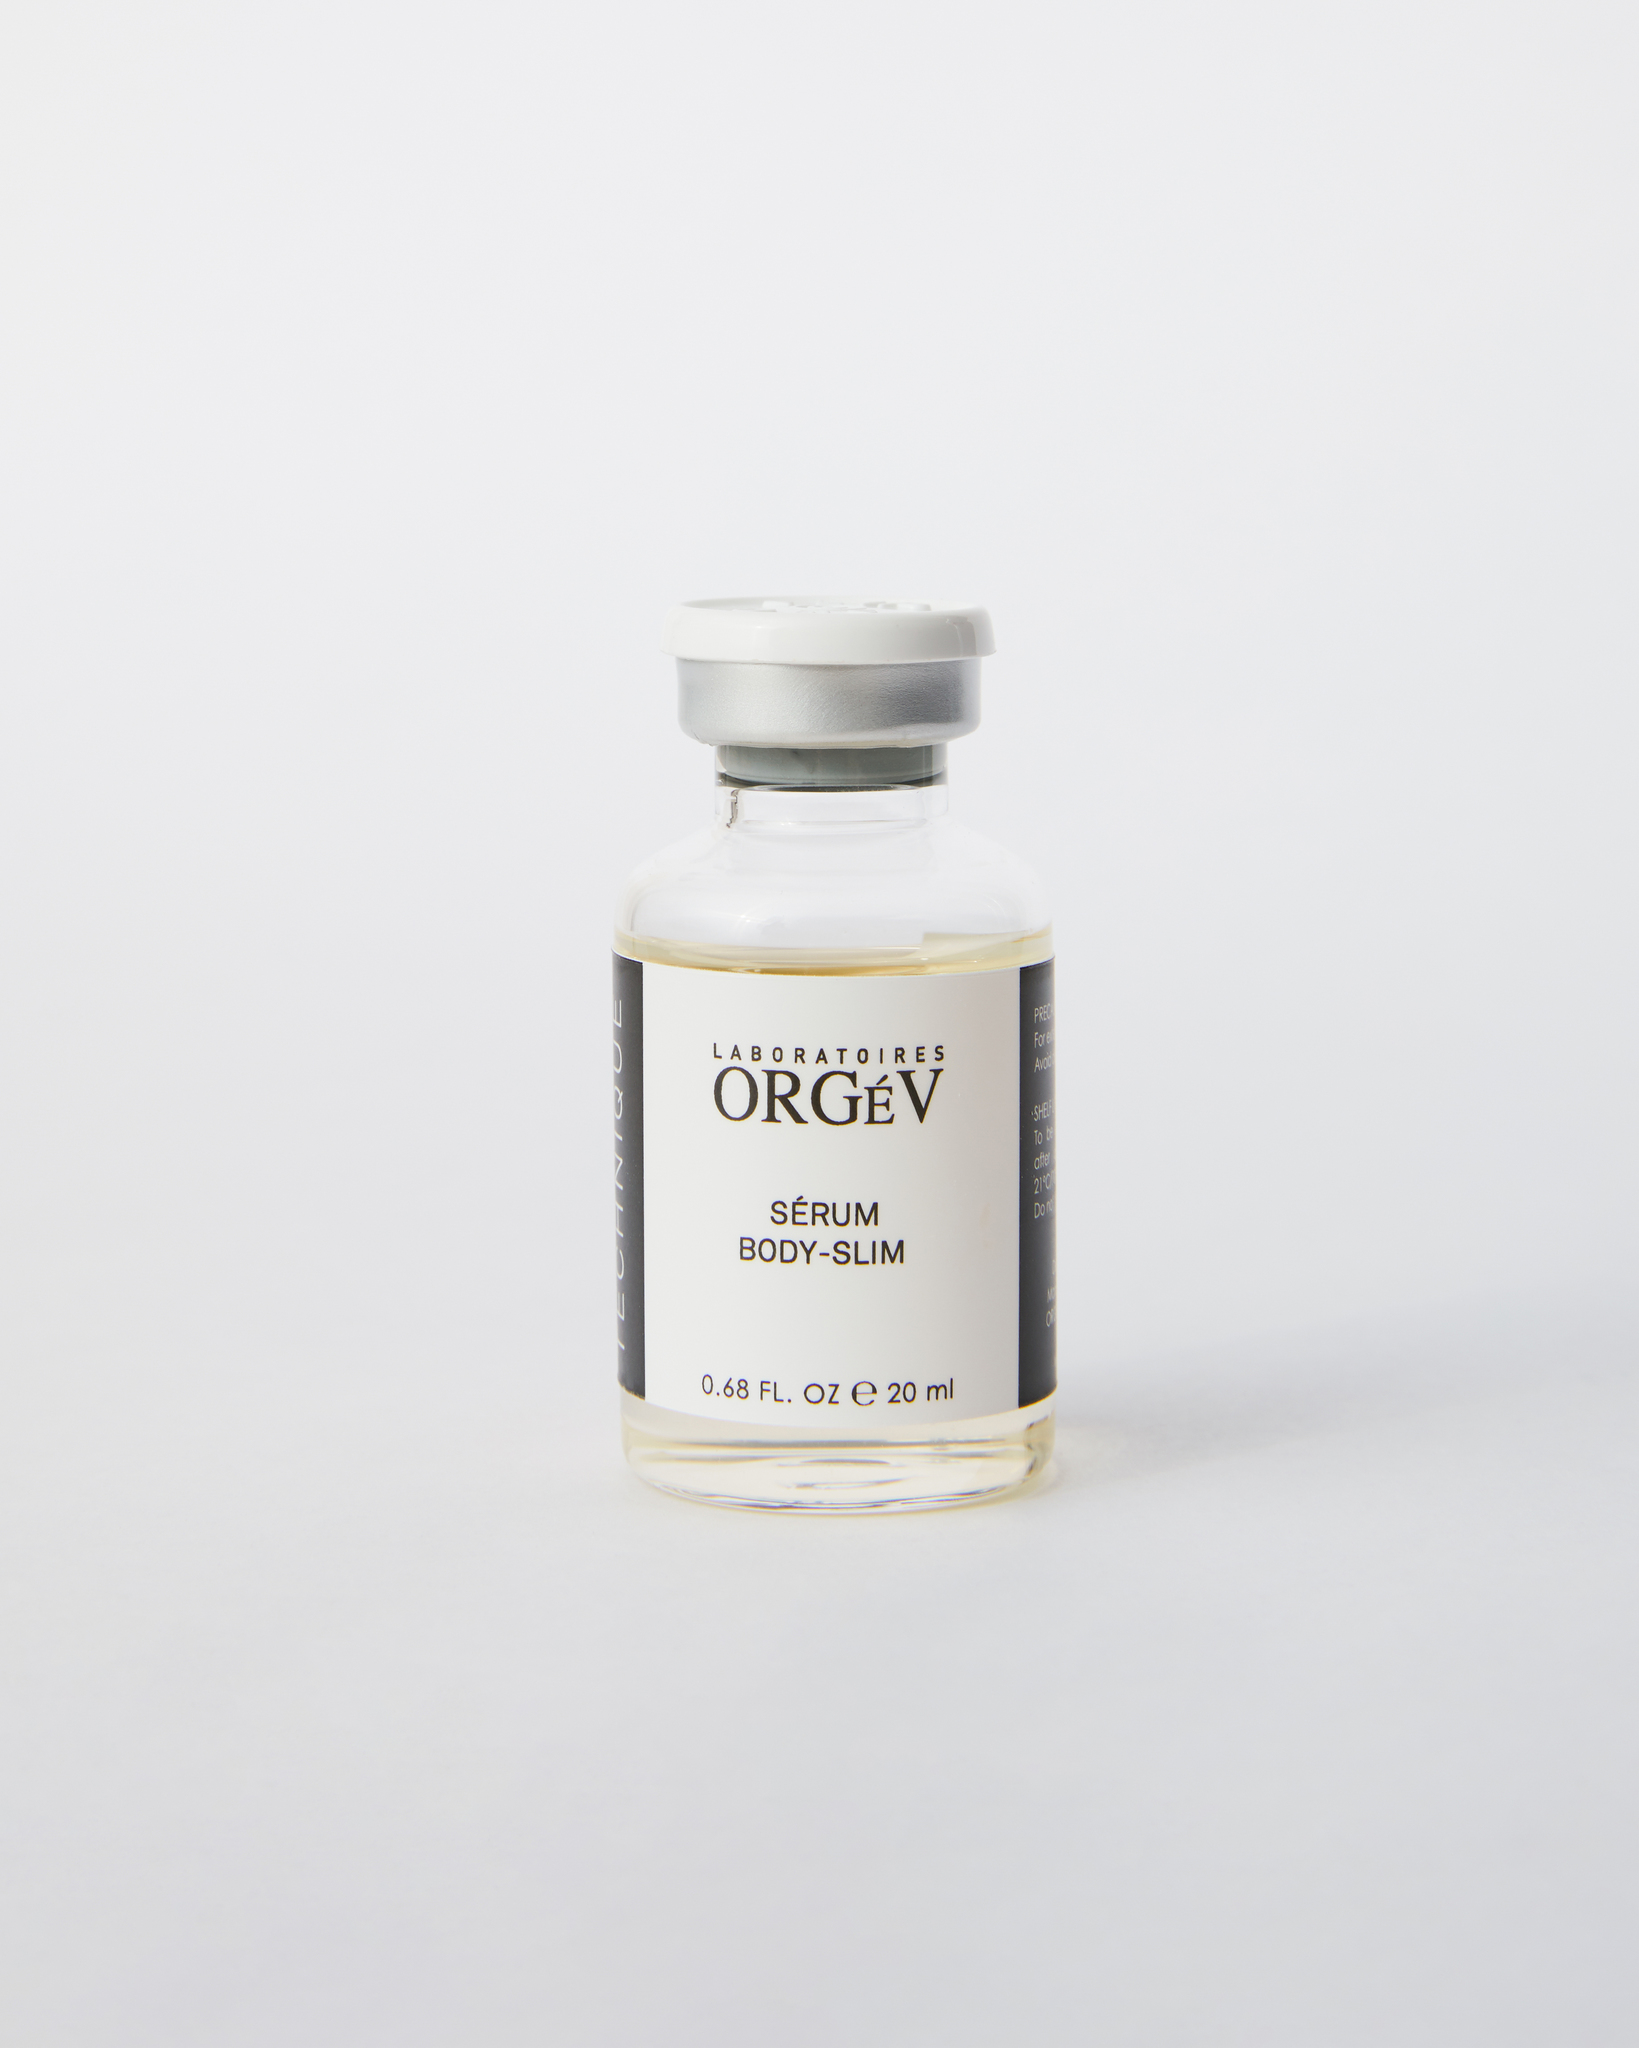 Сыворотка для тела ORGéV SERUM BODY-SLIM 20 мл